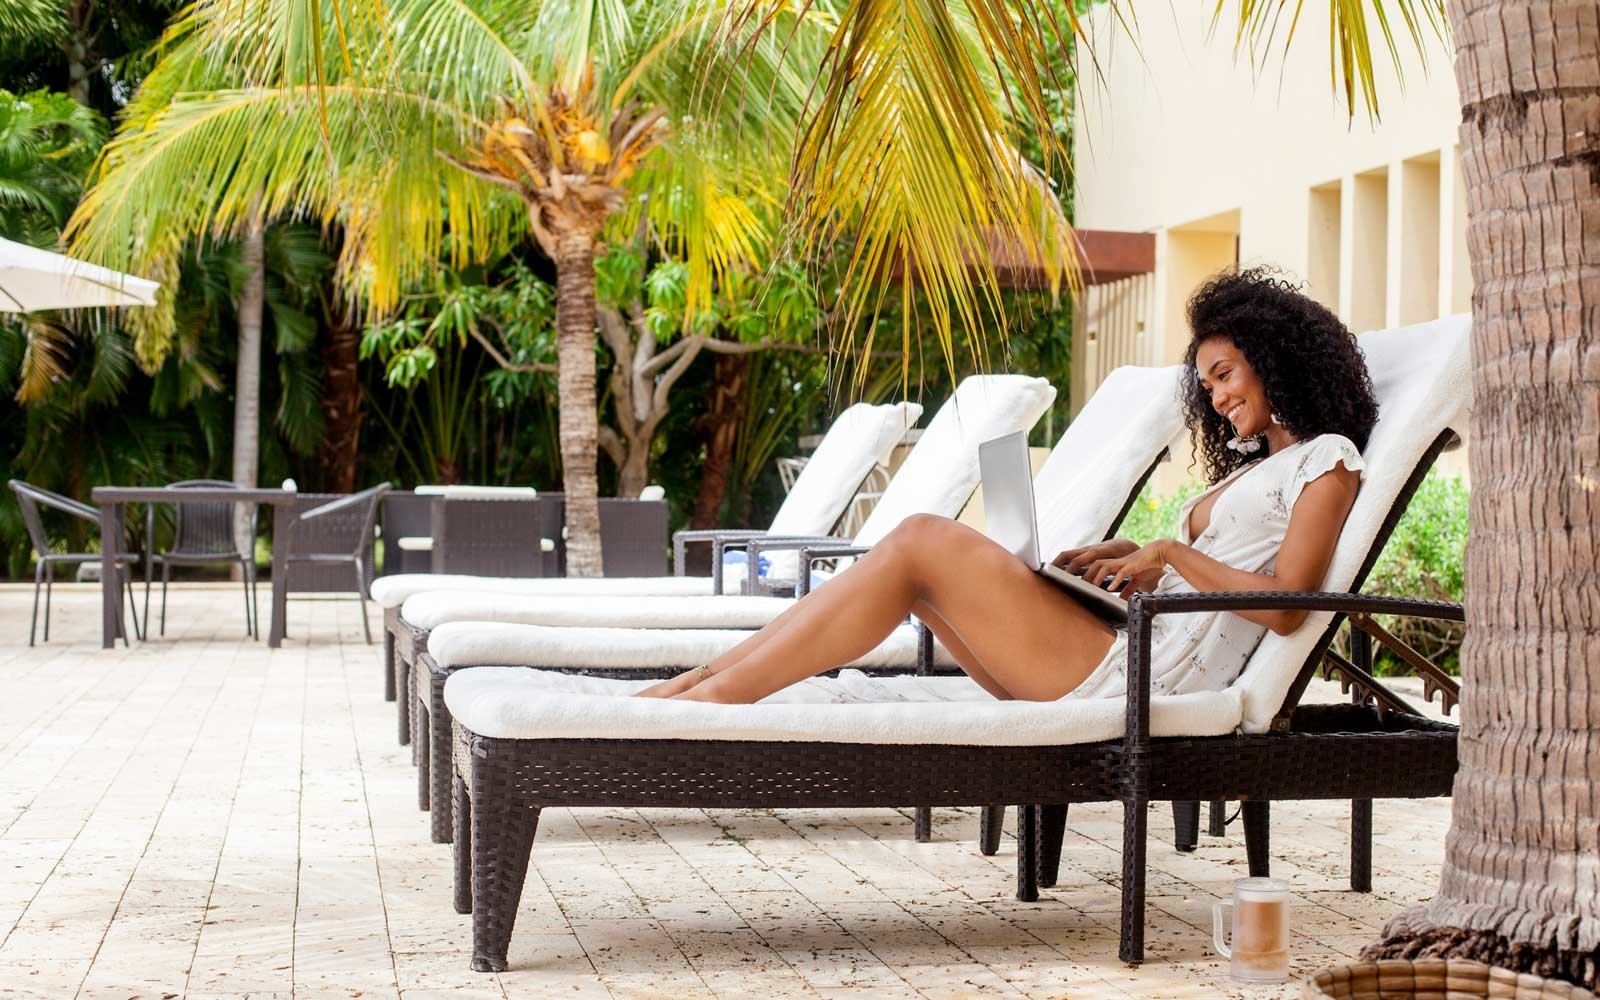 Bleisure: How mixing business and pleasure travel has become the new normal